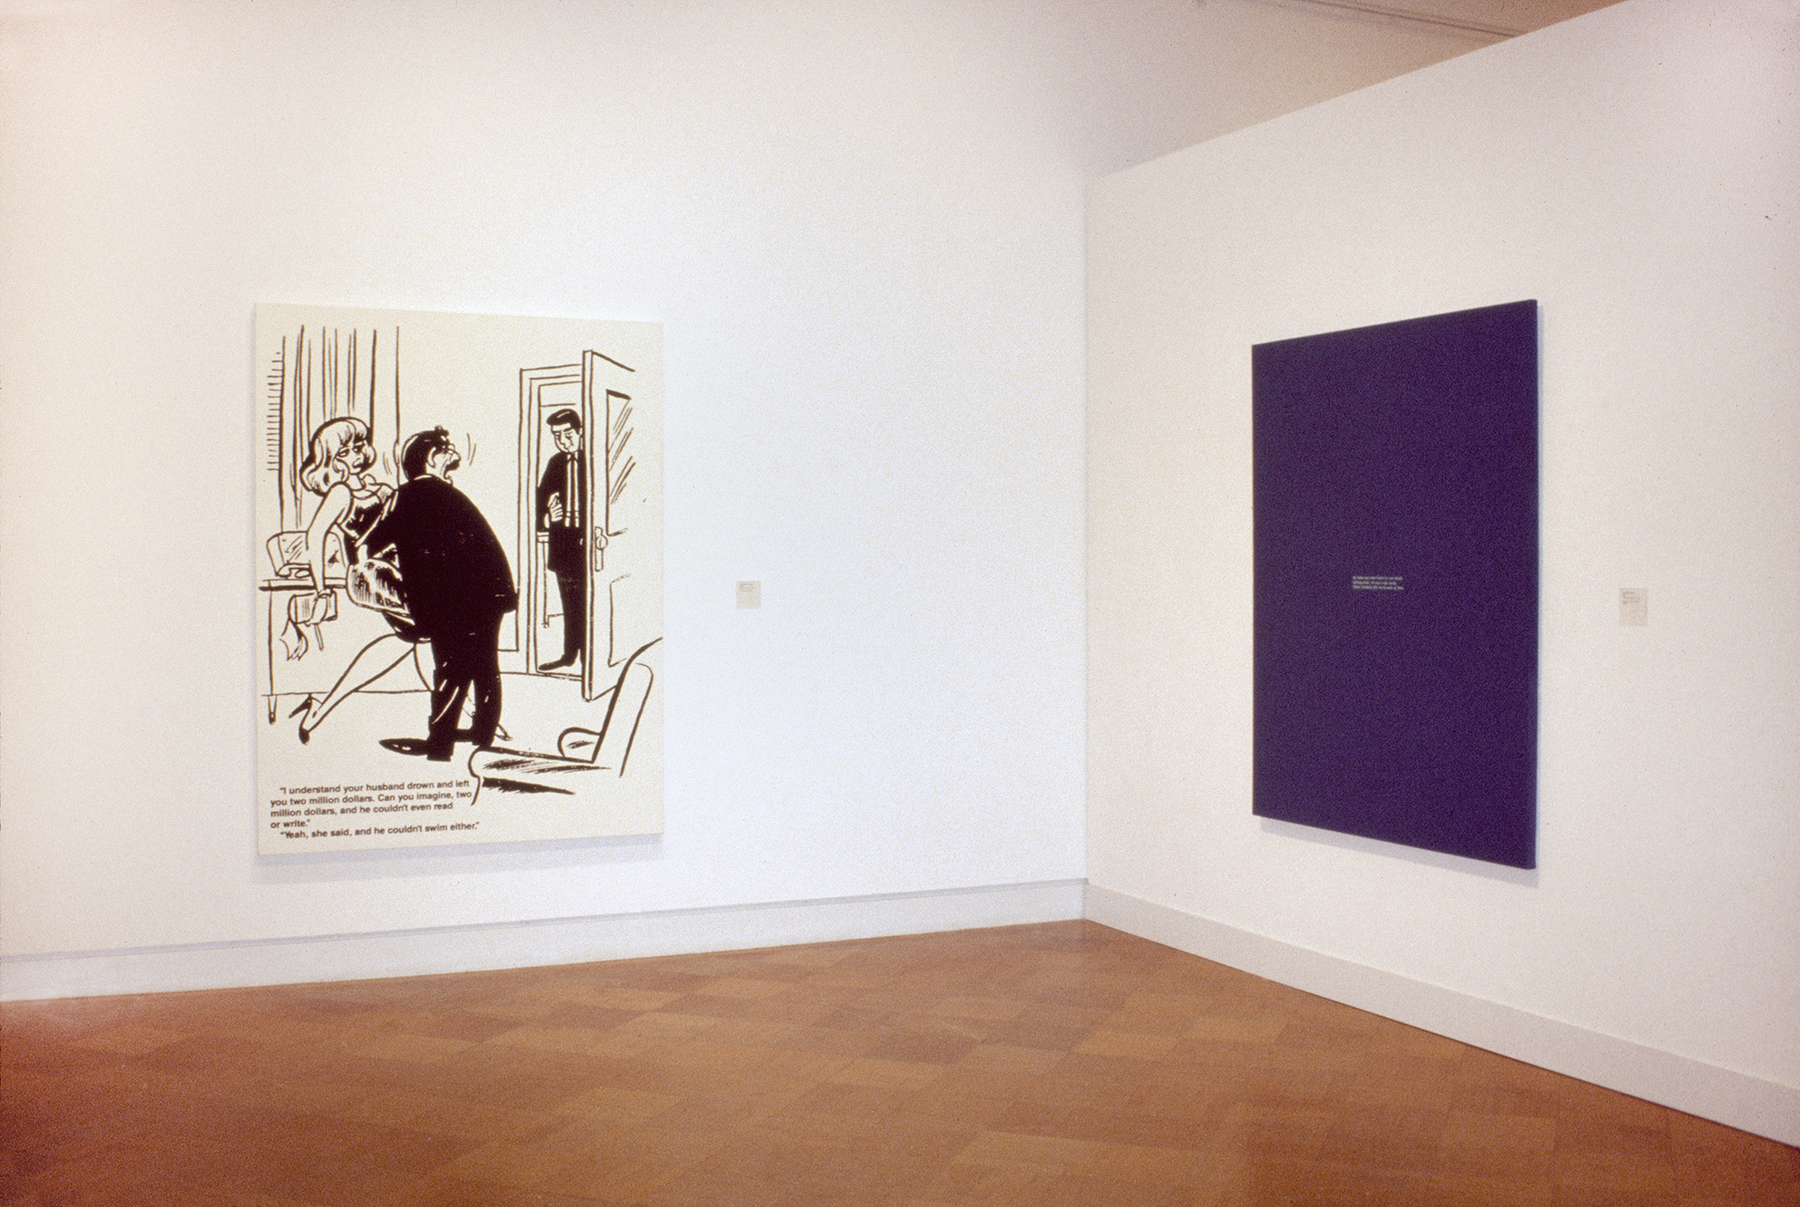 A large comic and a large purple canvas hanging in a gallery